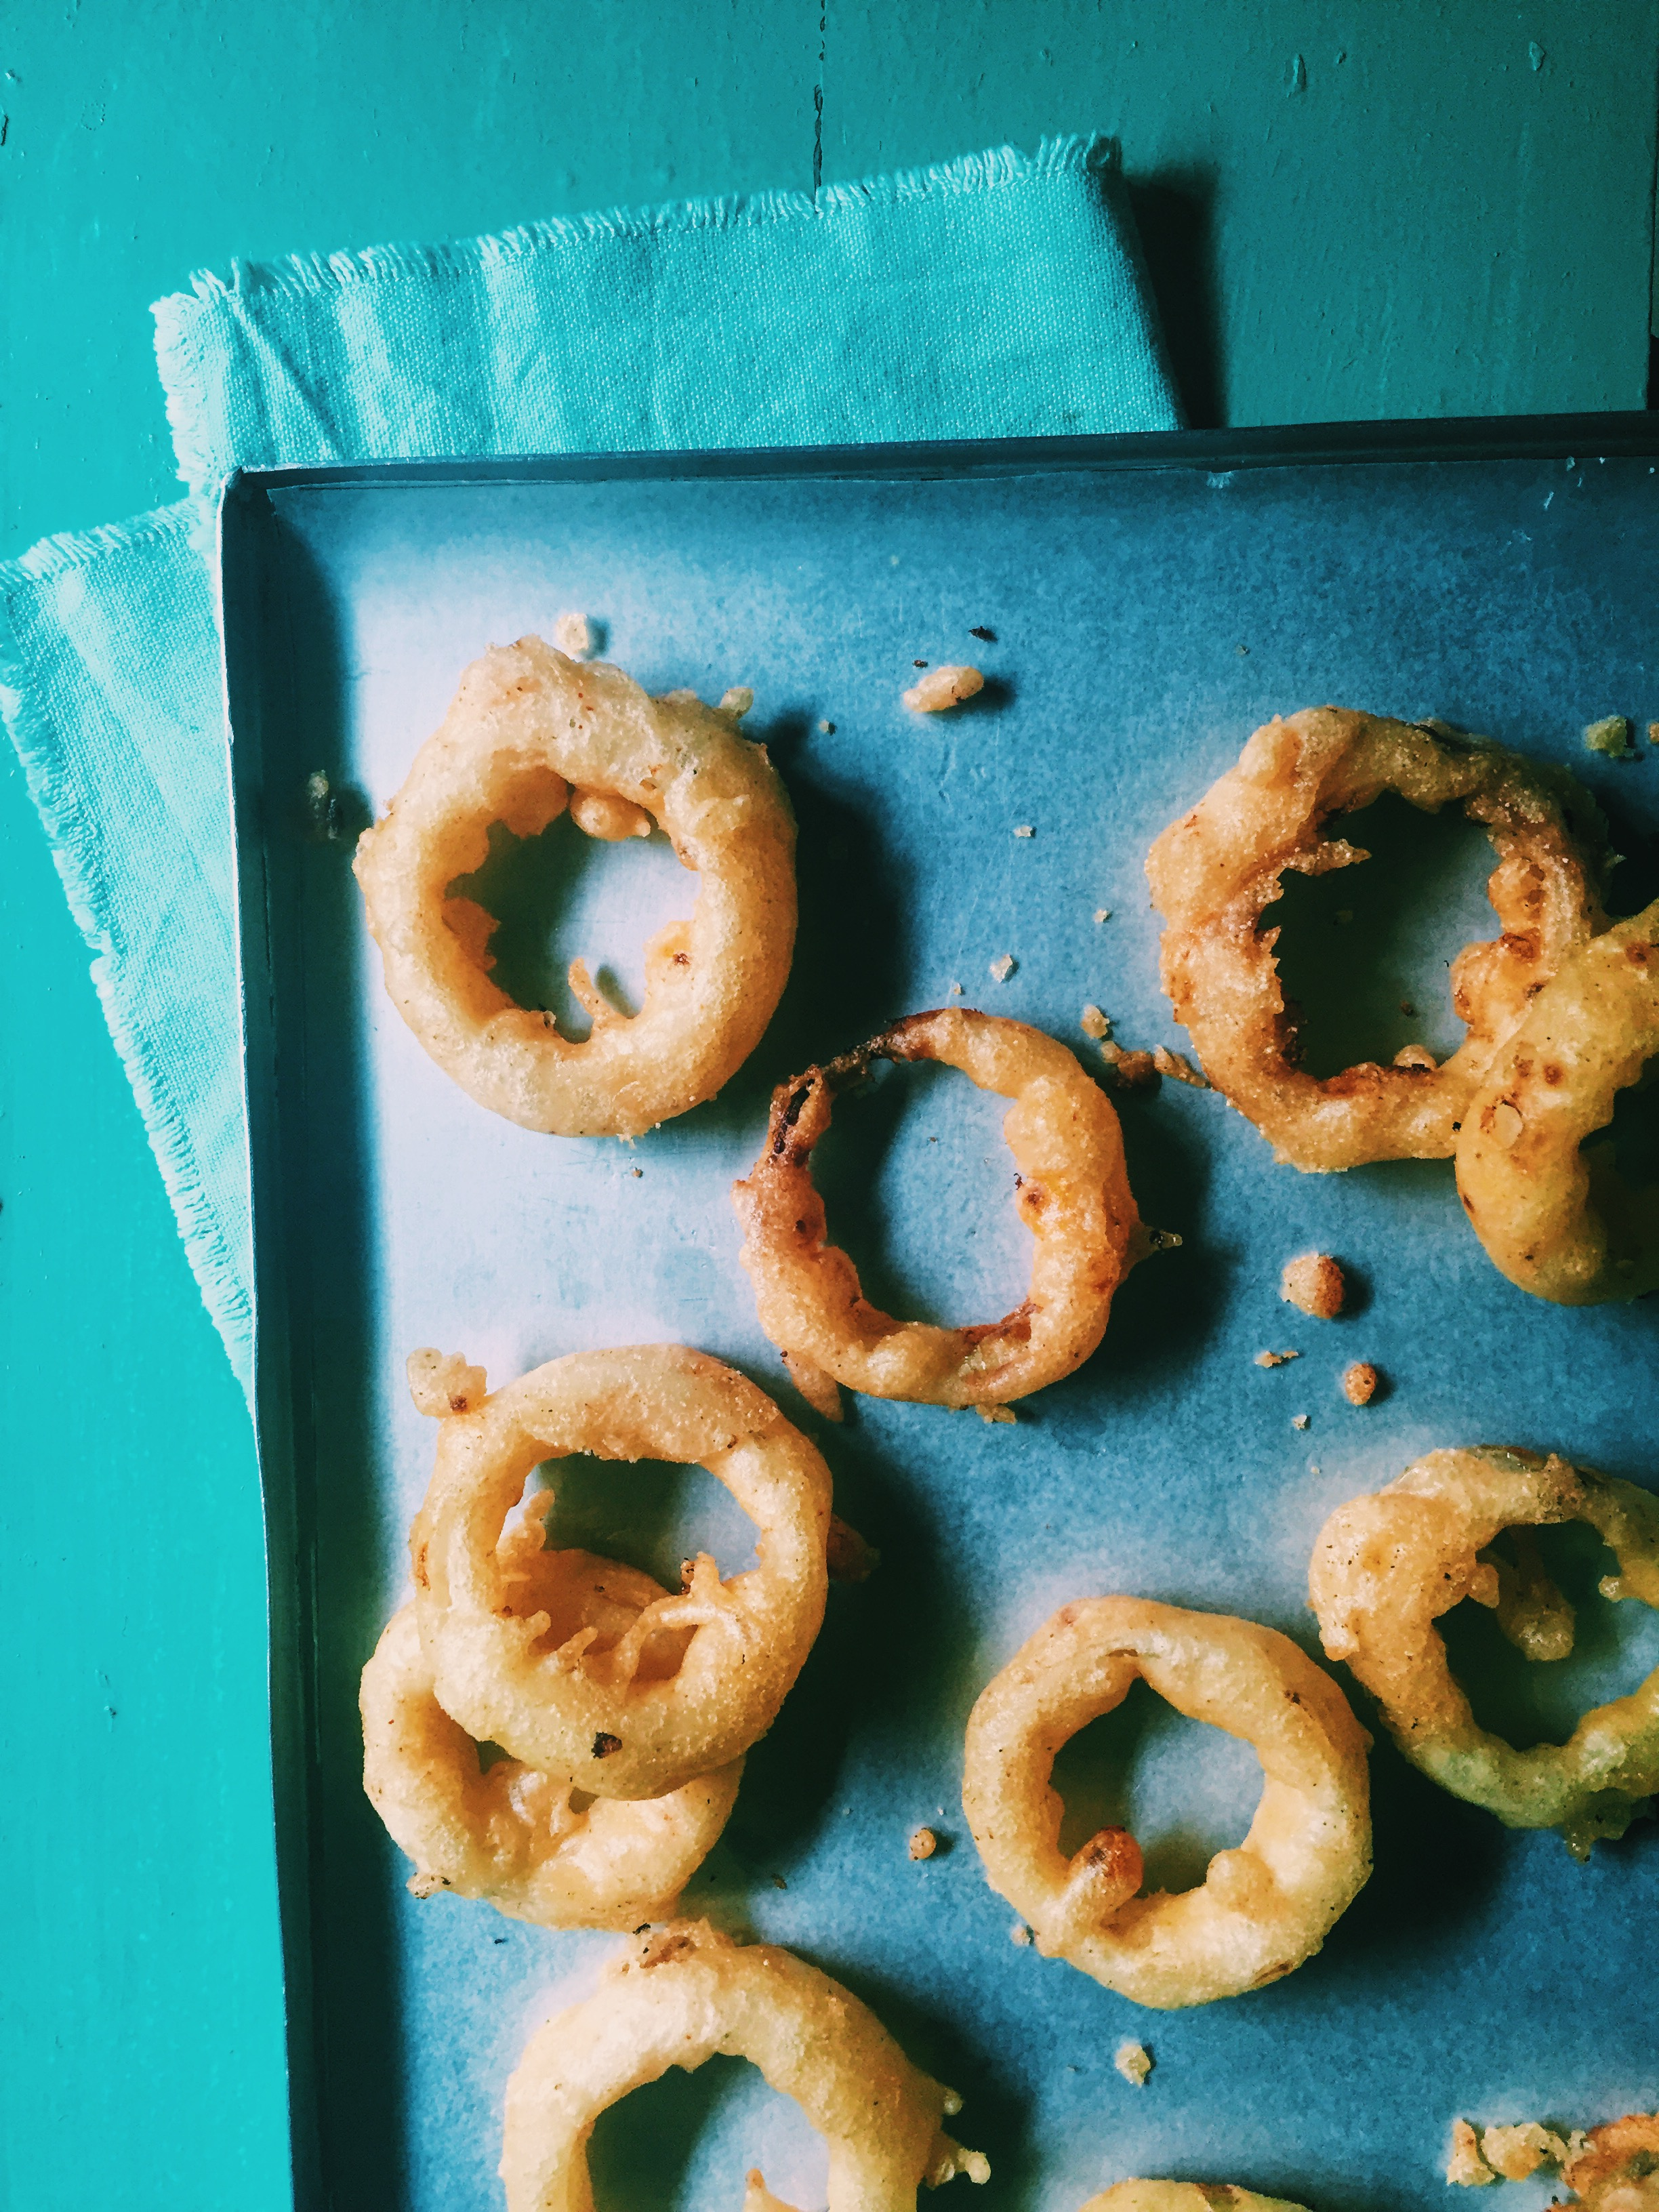 Buttermilk and Beer: Understanding Onion Rings